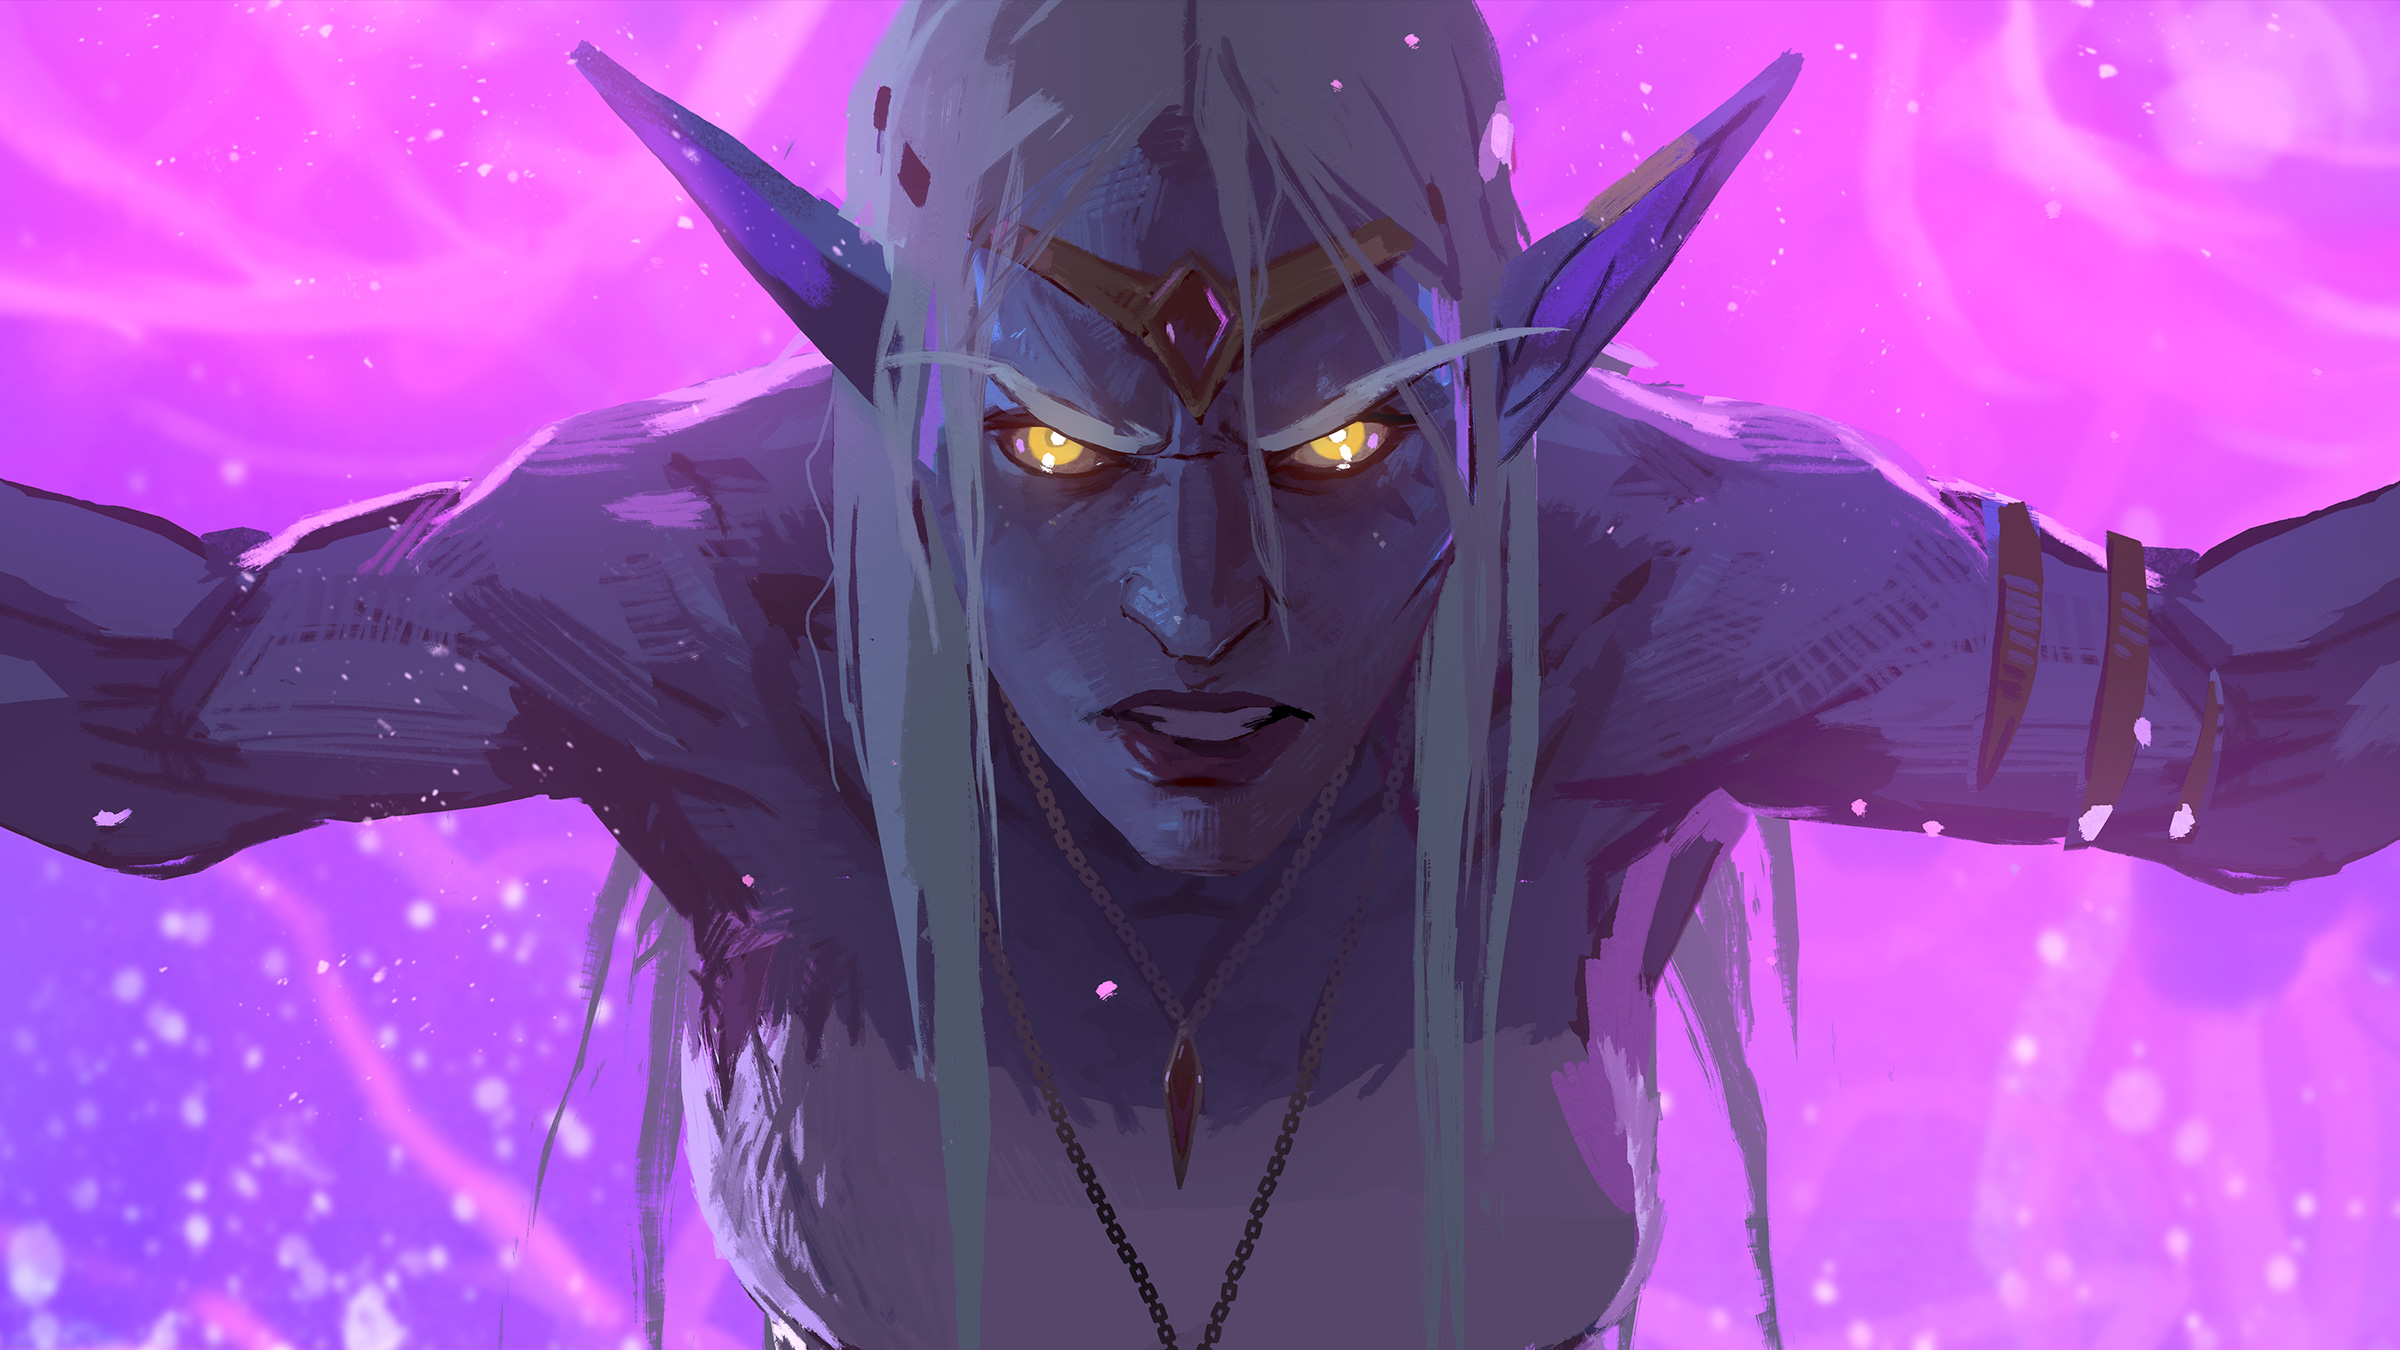 https://xgm.guru/p/world-of-insanity/faces-of-war-azshara